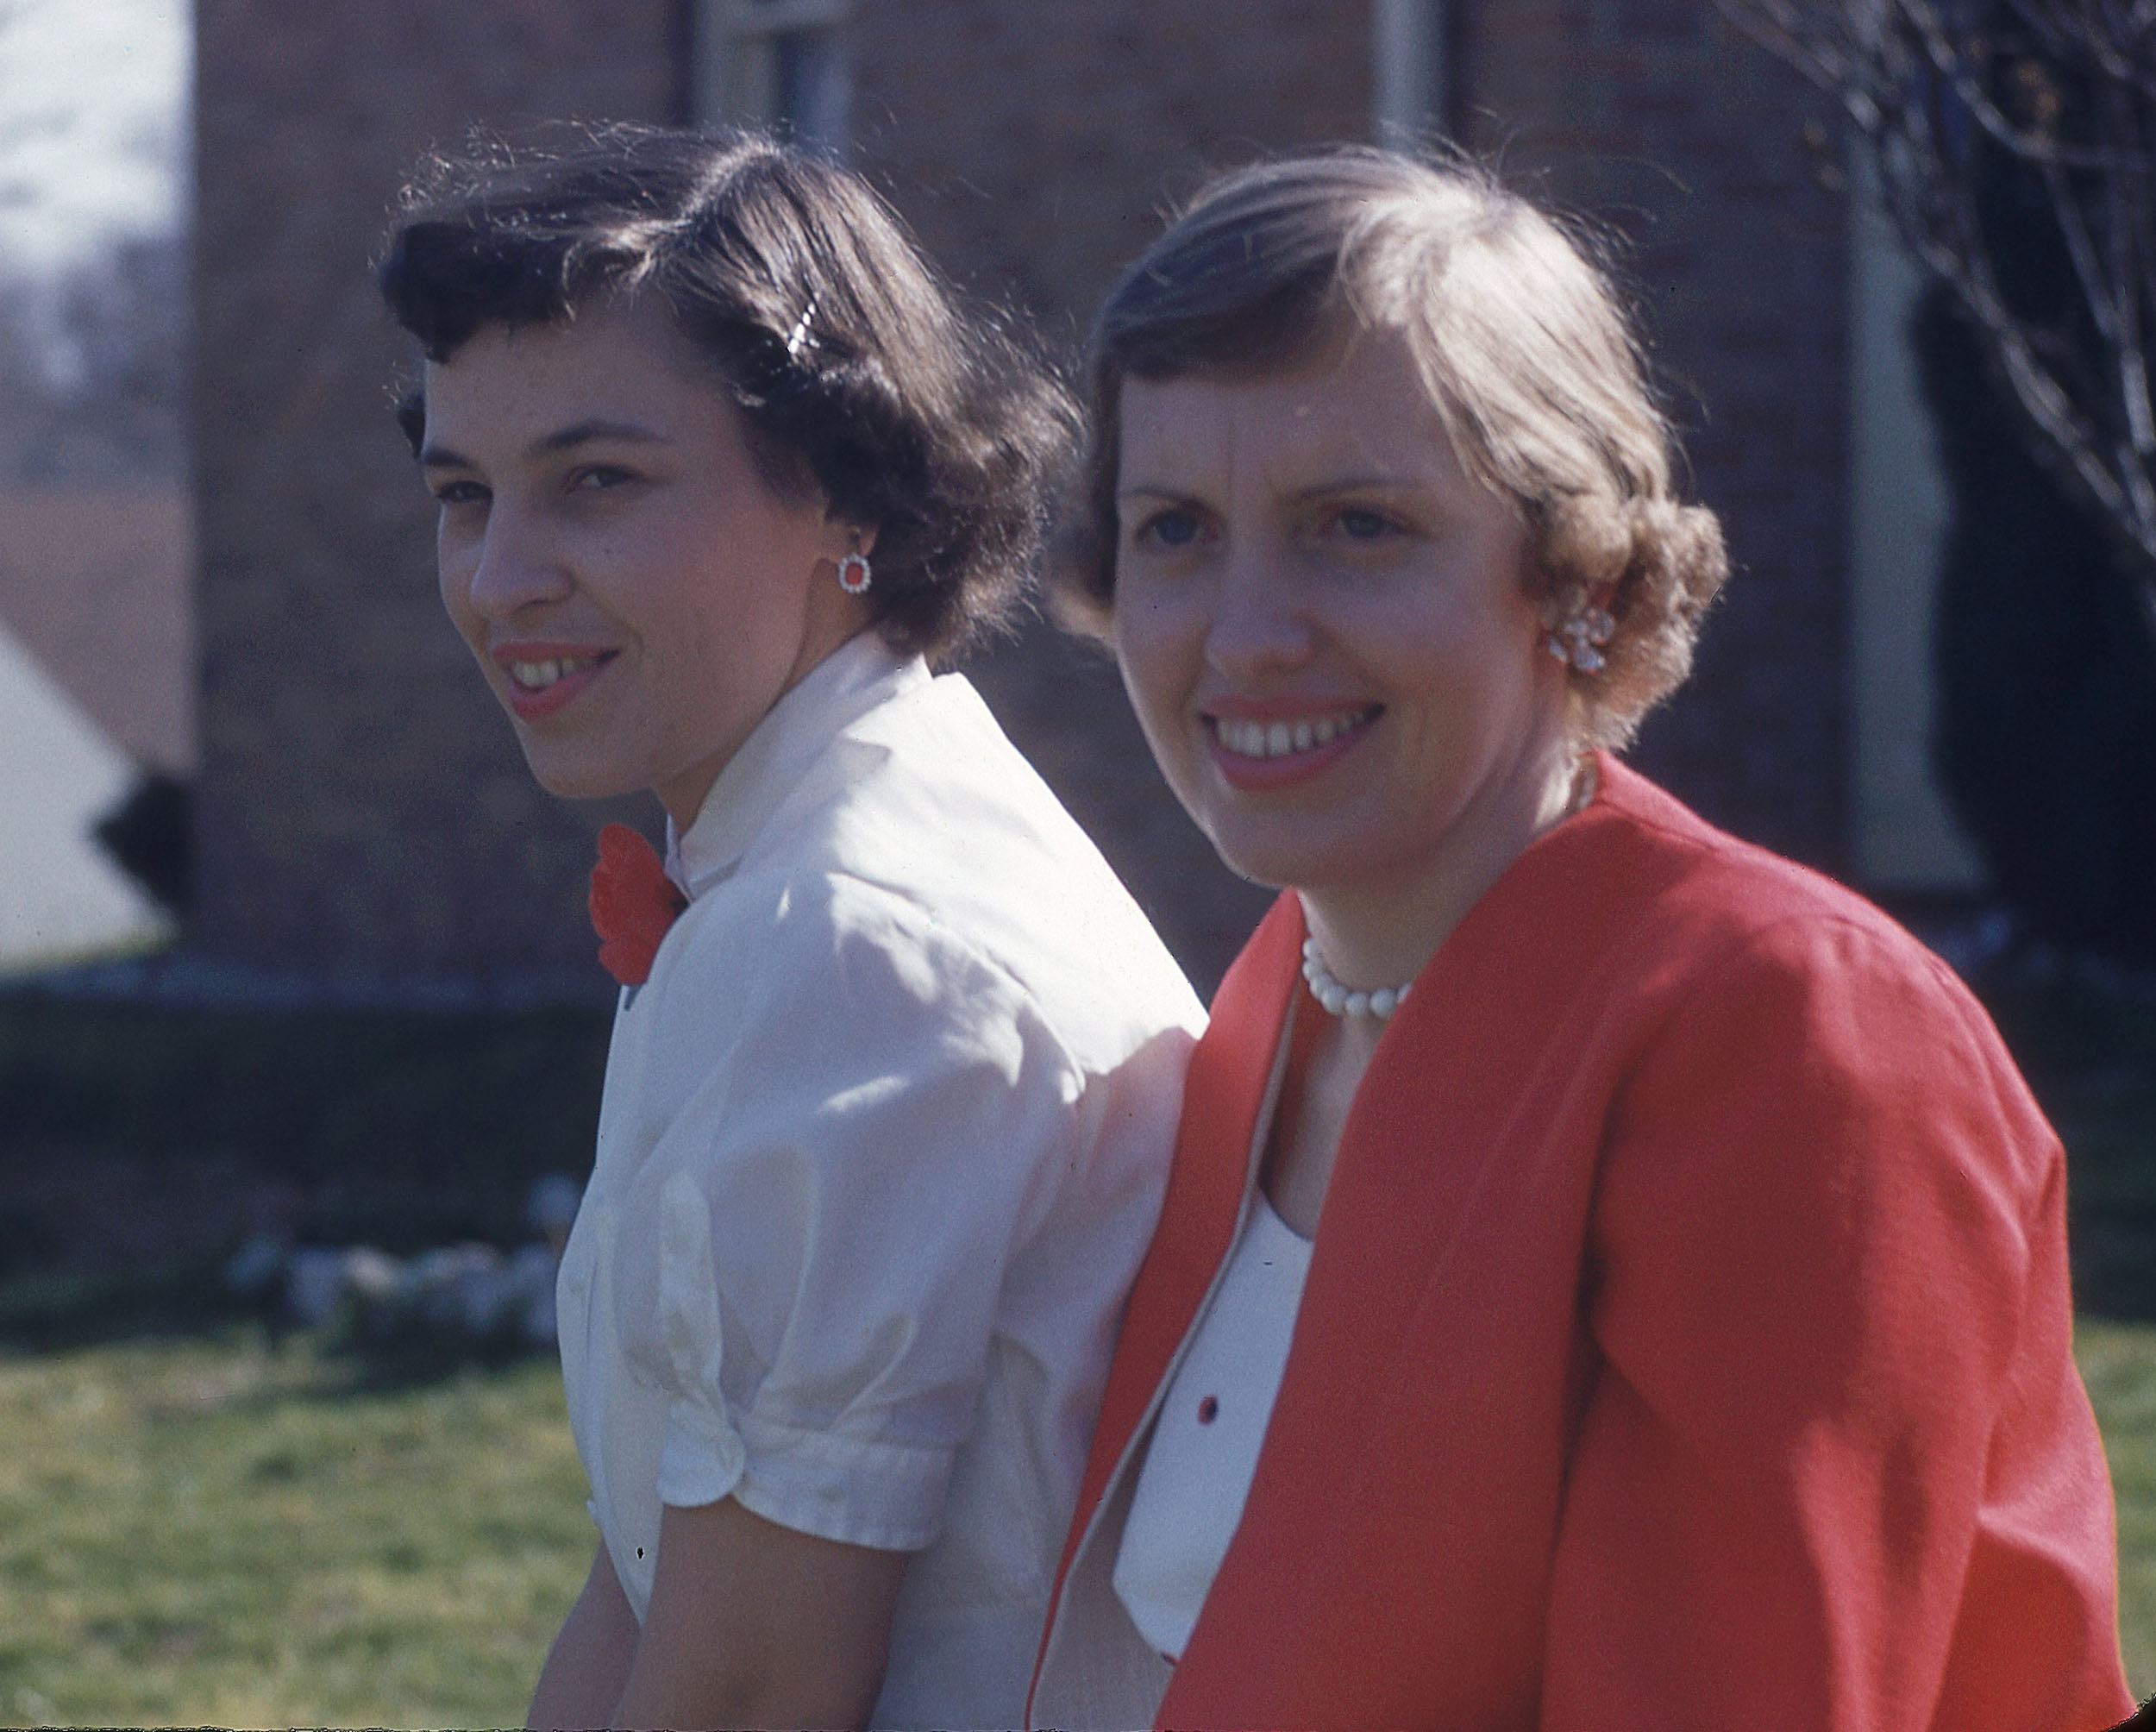 Betty Veit (right) - Betty (nee Hammet) and Harvey were married in the summer of 1952, just before the letters start. Their marital status allowed her to travel with Harvey as he served on various Air Force bases in the country.